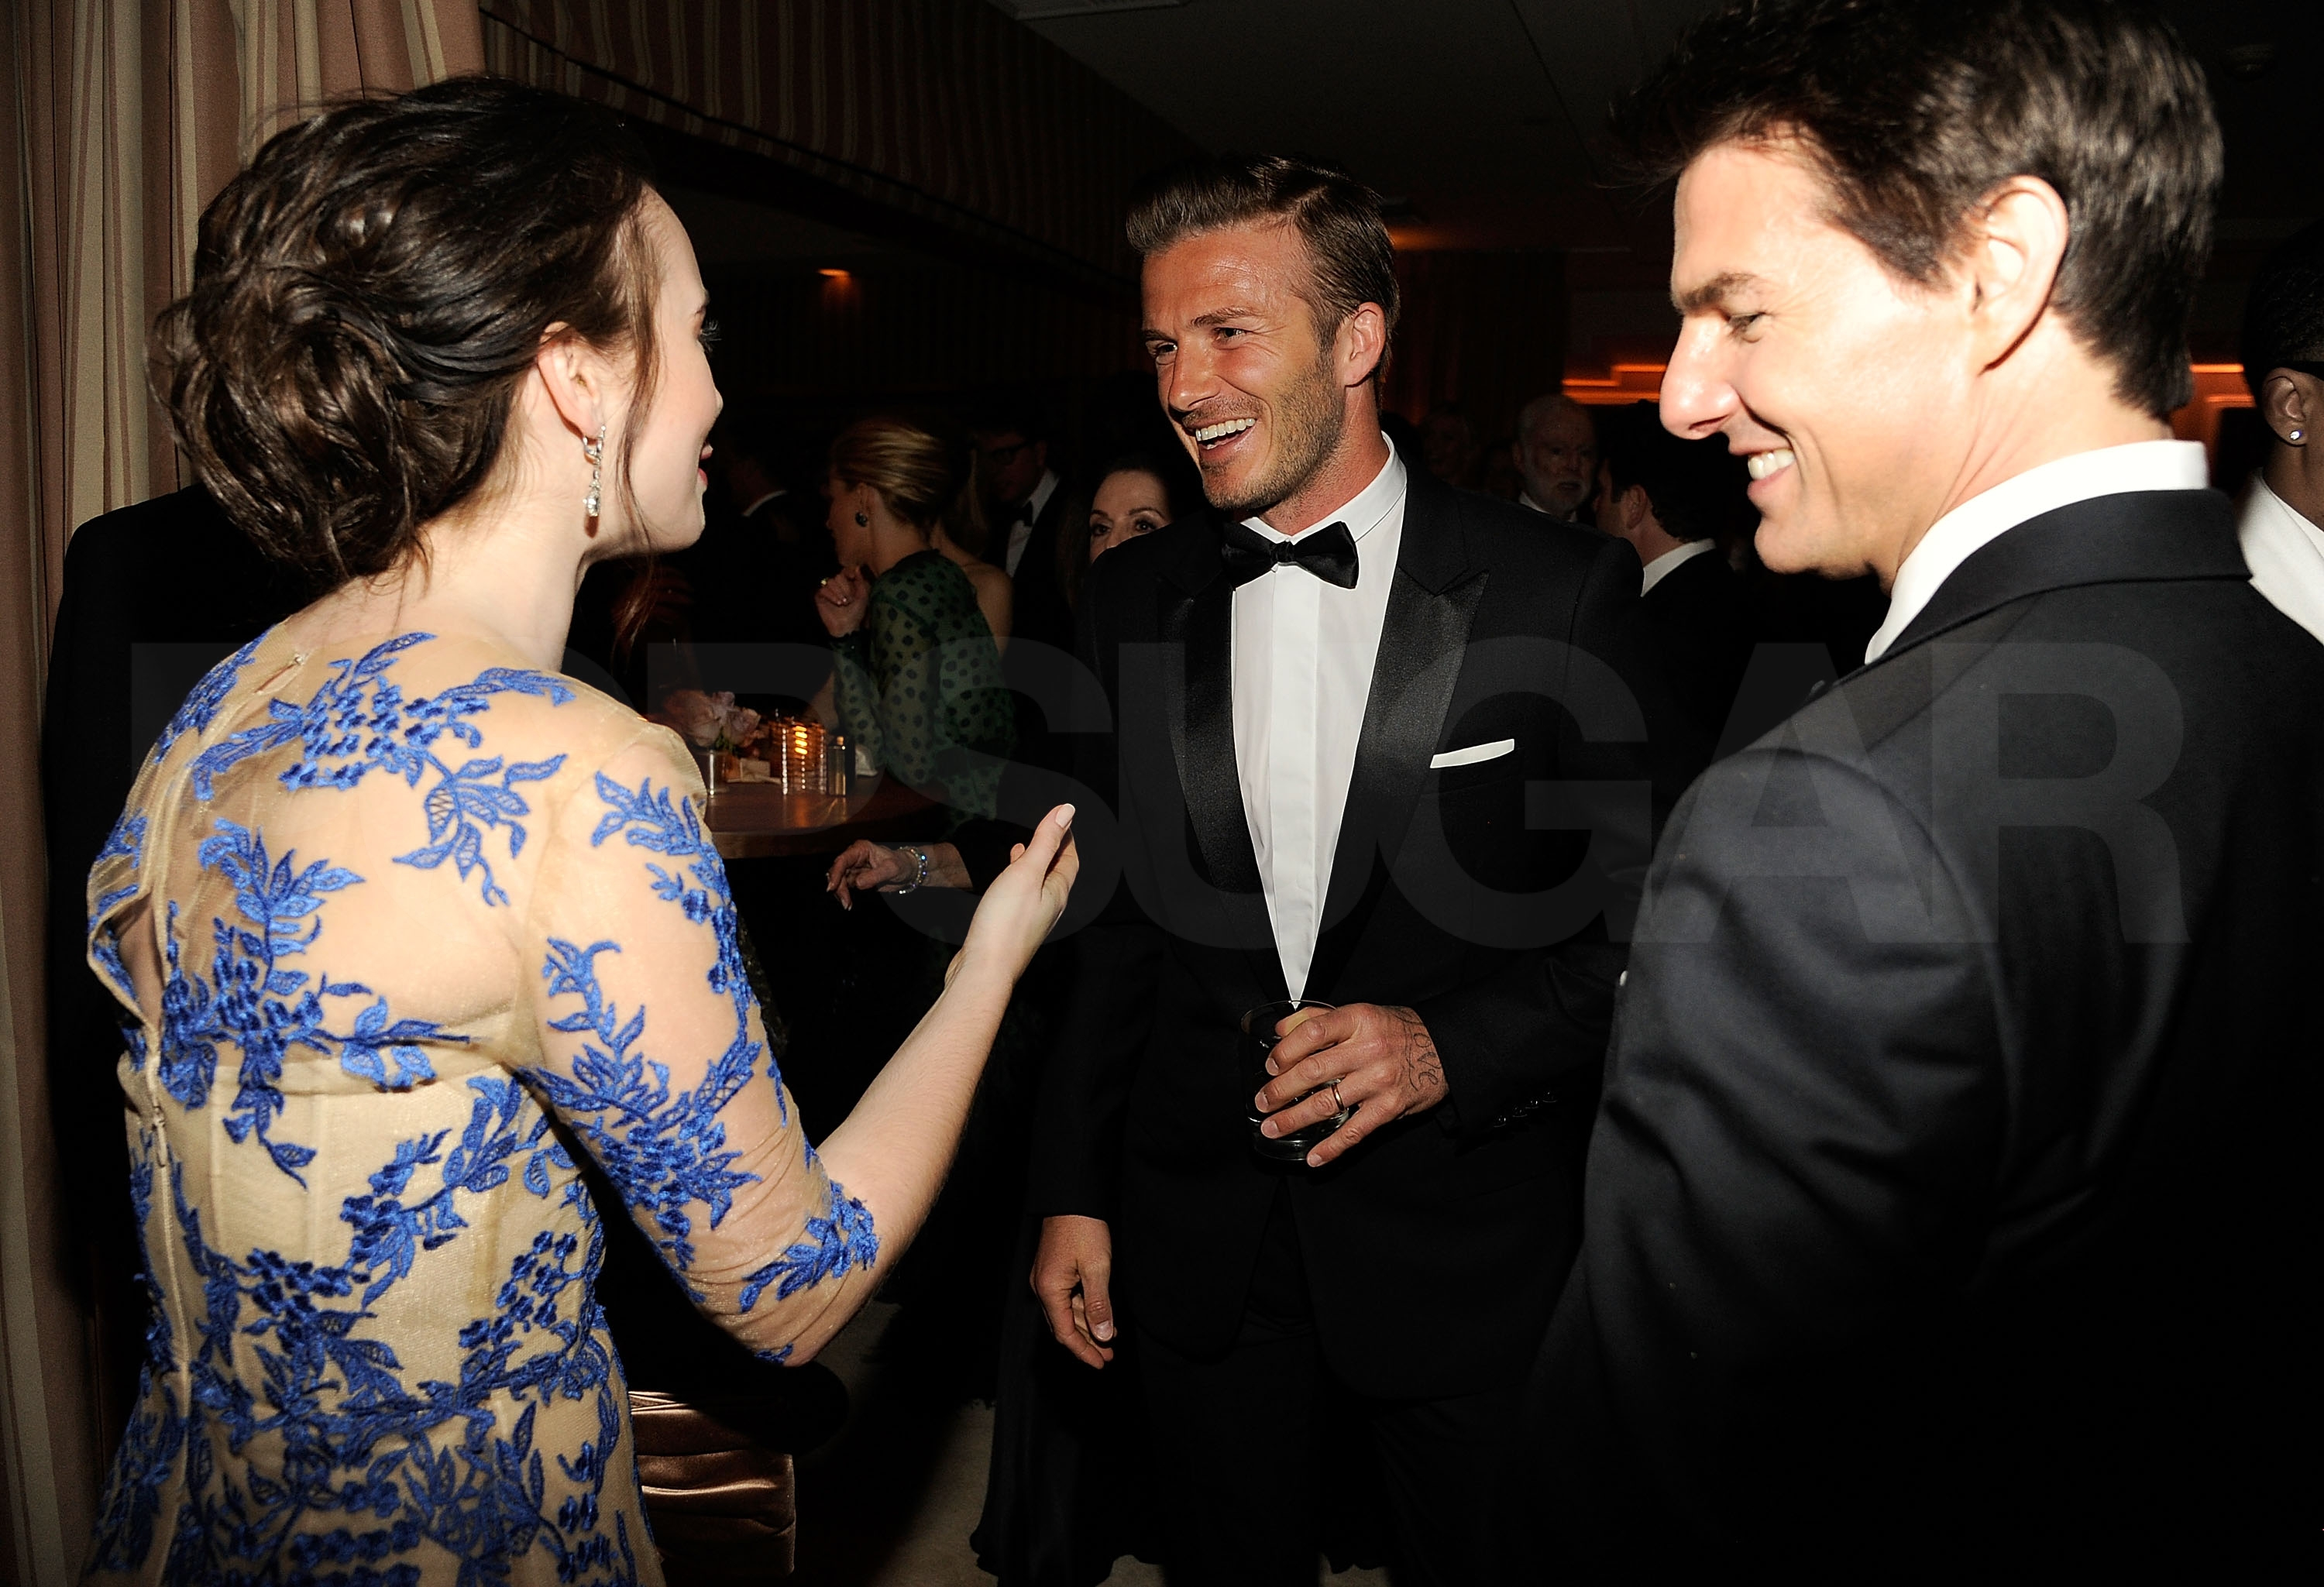 Lily Collins, David Beckham, Tom Cruise